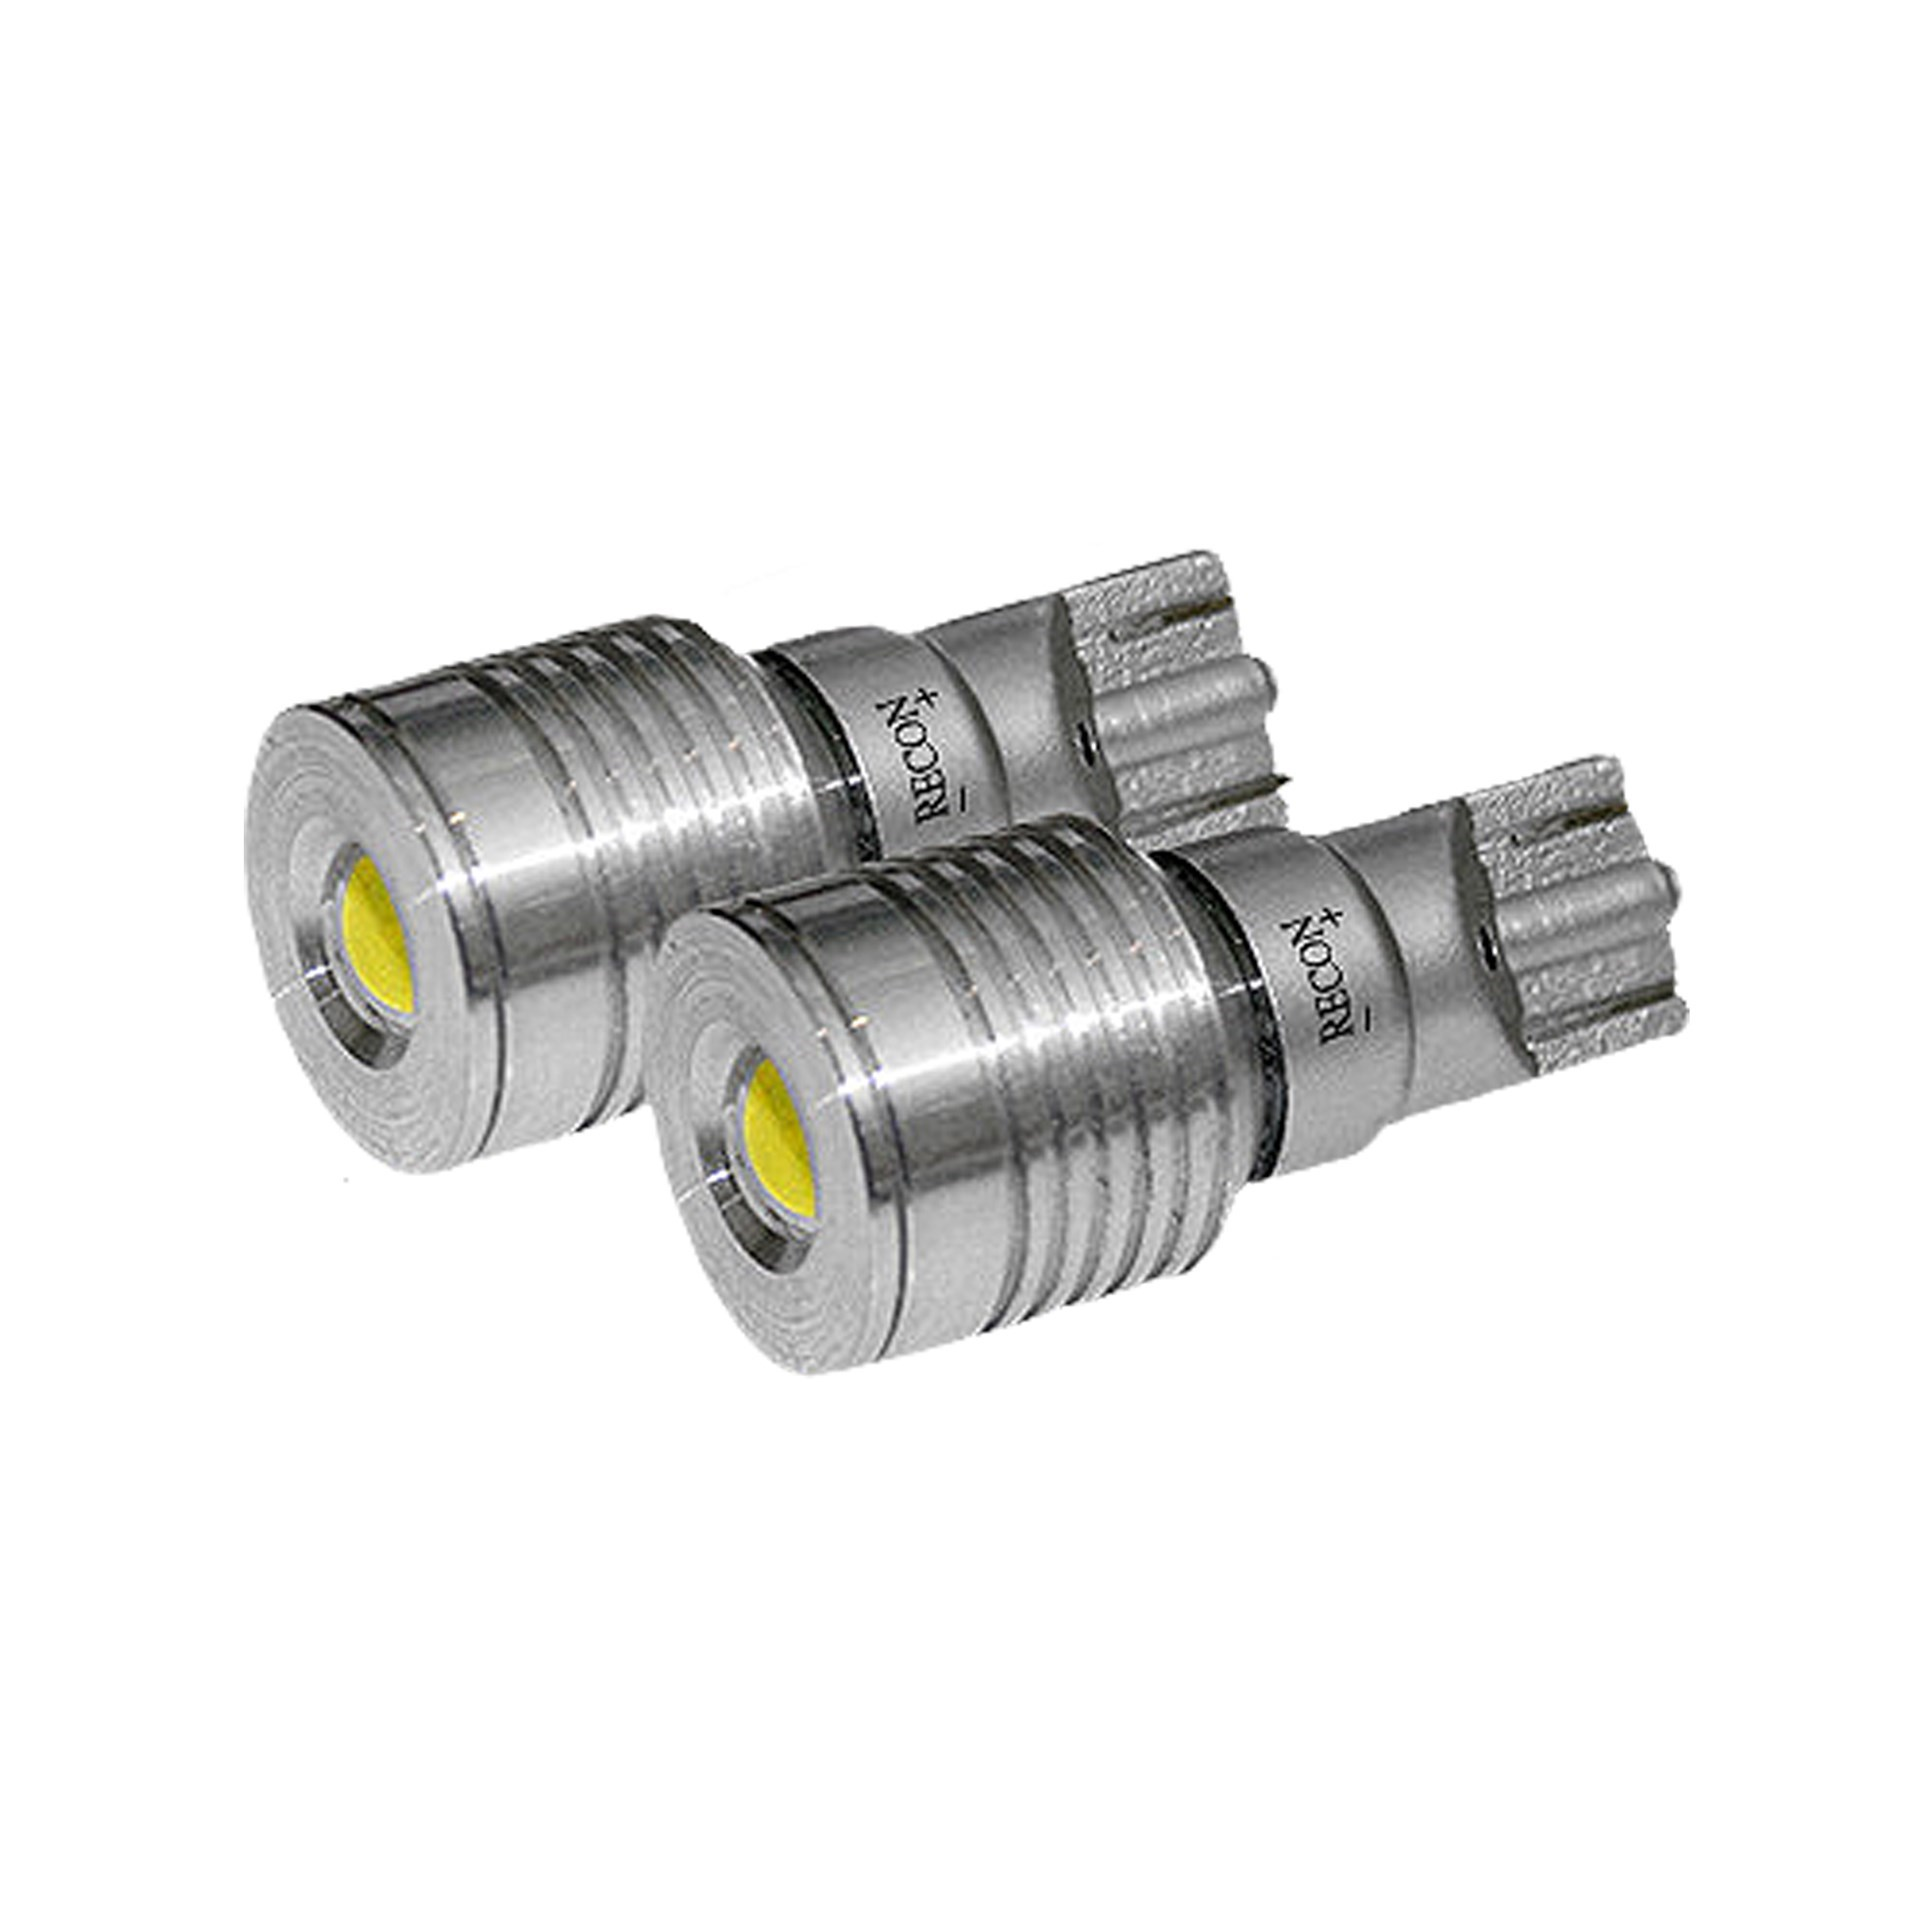 264225WH - Recon 921 T-15 (Ultra High Power Magnified LED) Bullet-Style Ultra High Power 3W SMD Bulbs ΓÇô WHITE (Set of 2)